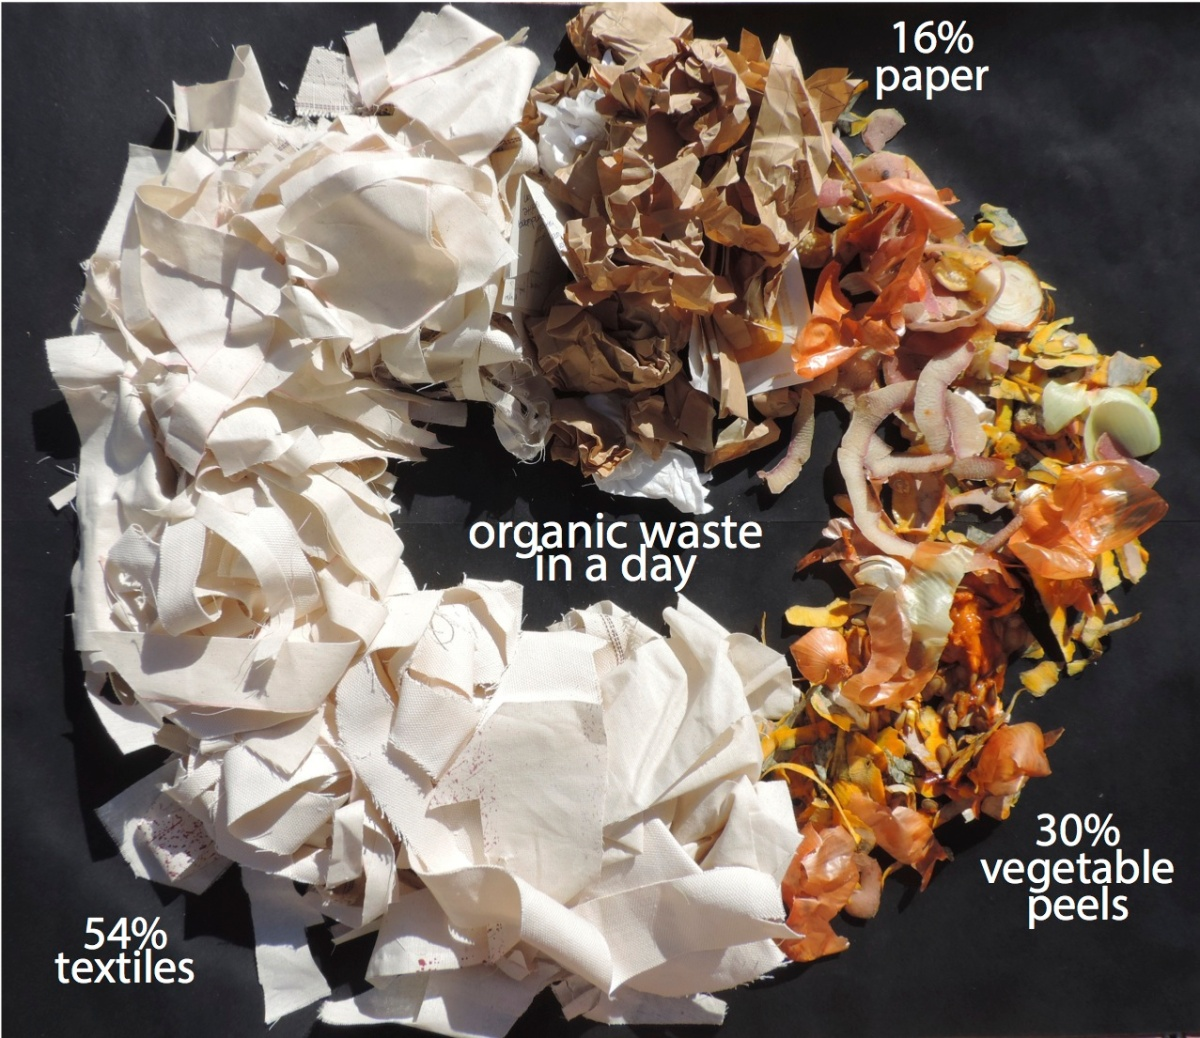 A: Extending the Life of TextileWaste